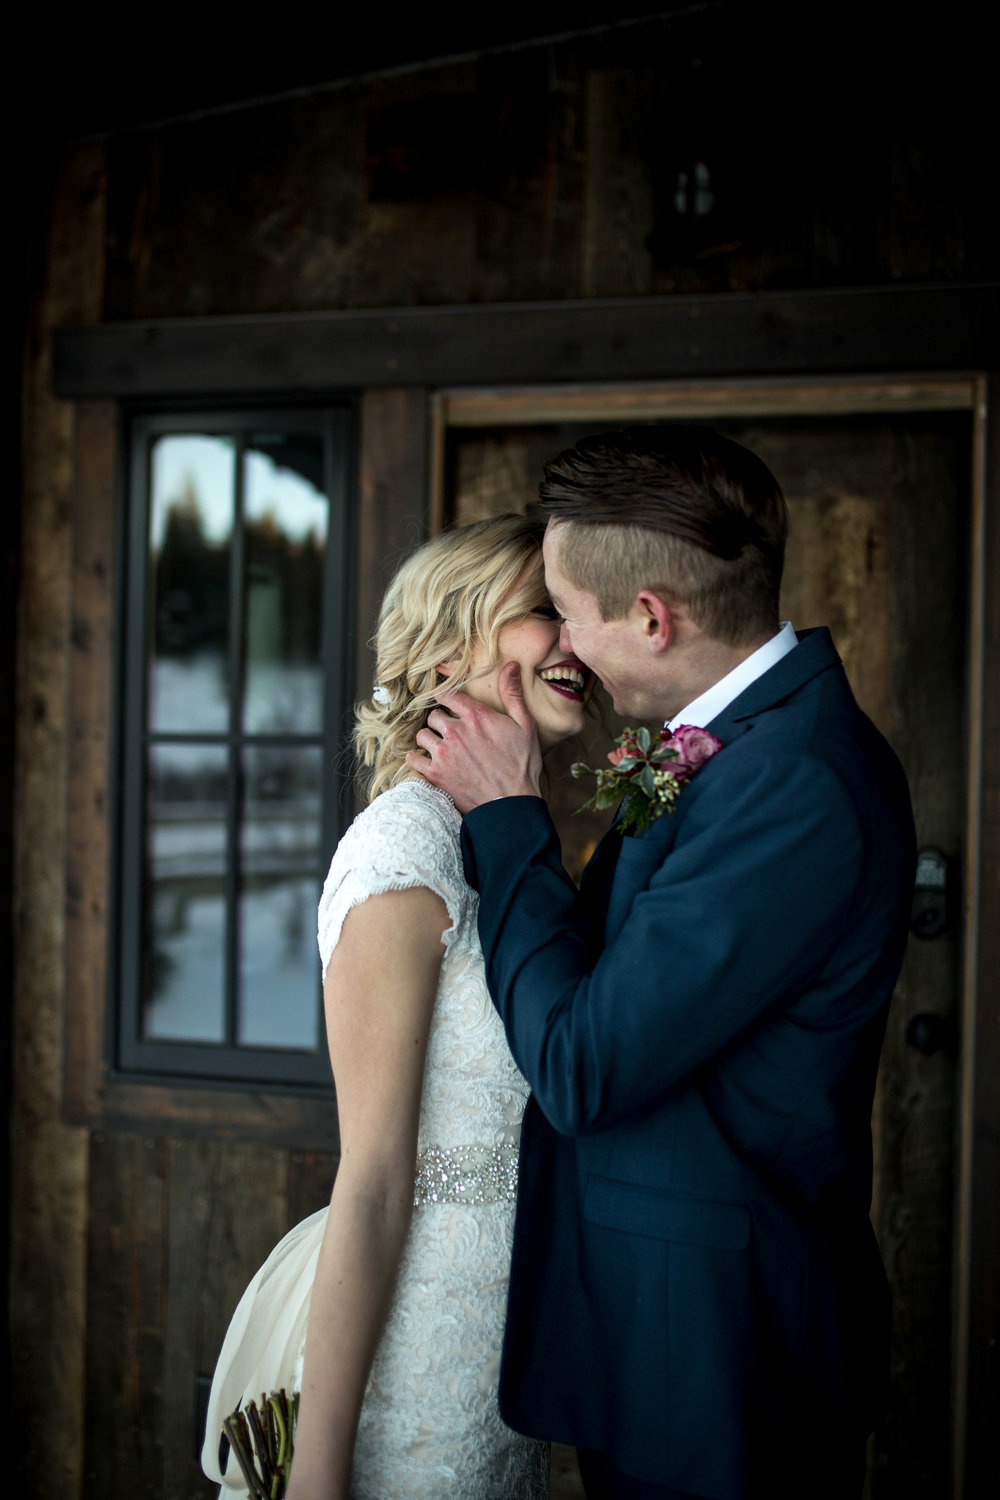 WinterWeddingBridalsTarghee (45 of 121).jpg